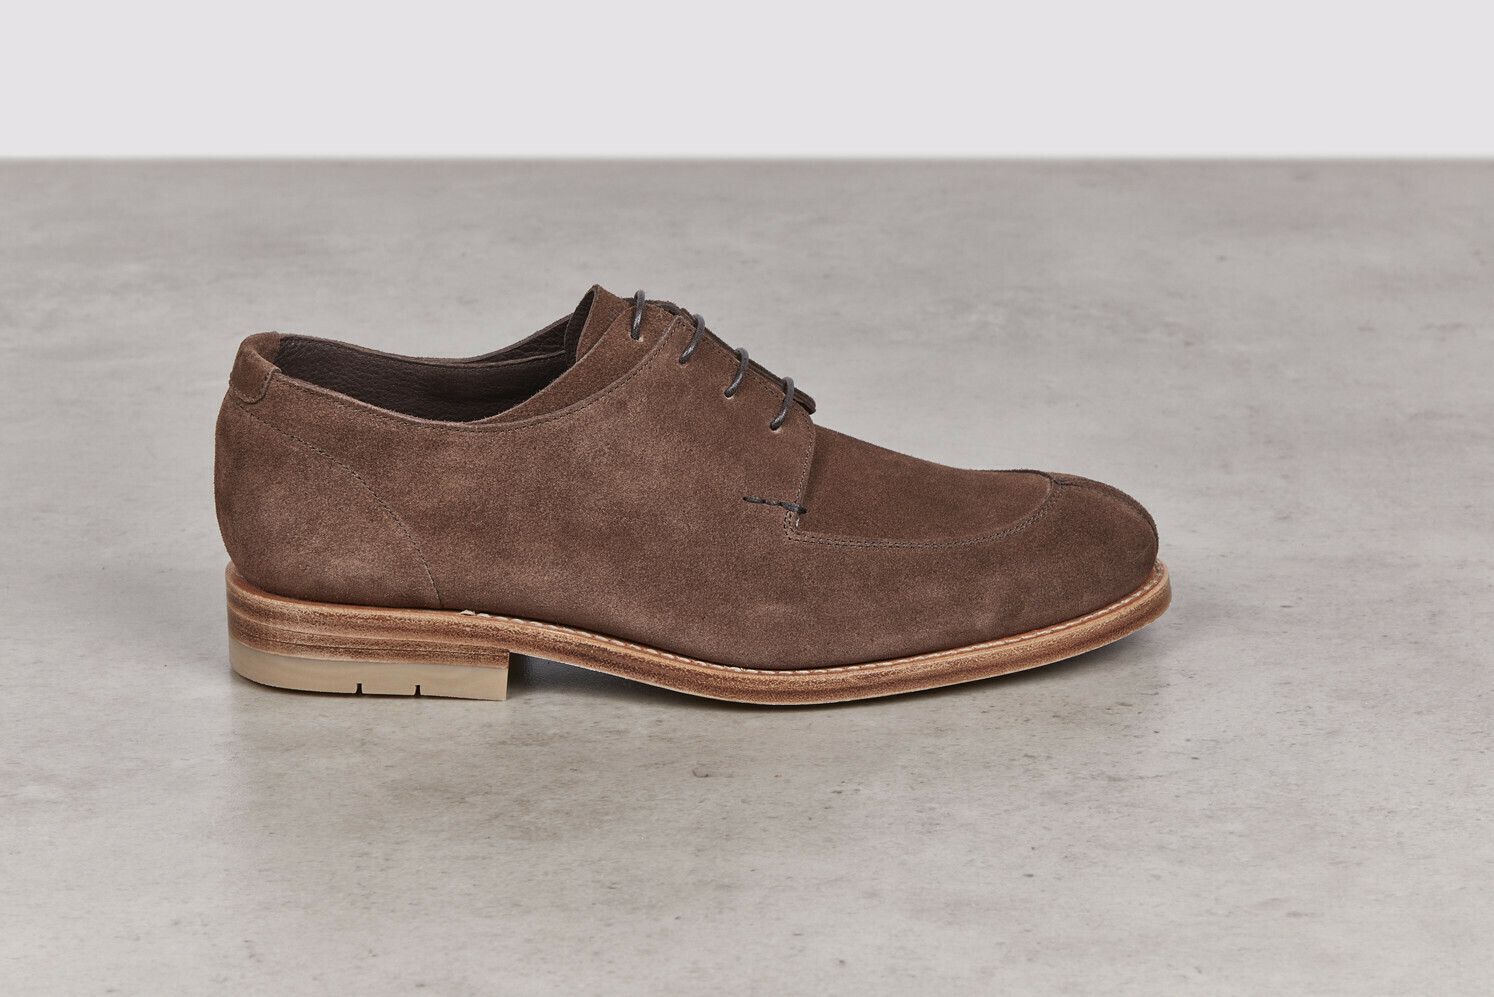 SALVIA Arabica Calf Suede Leather